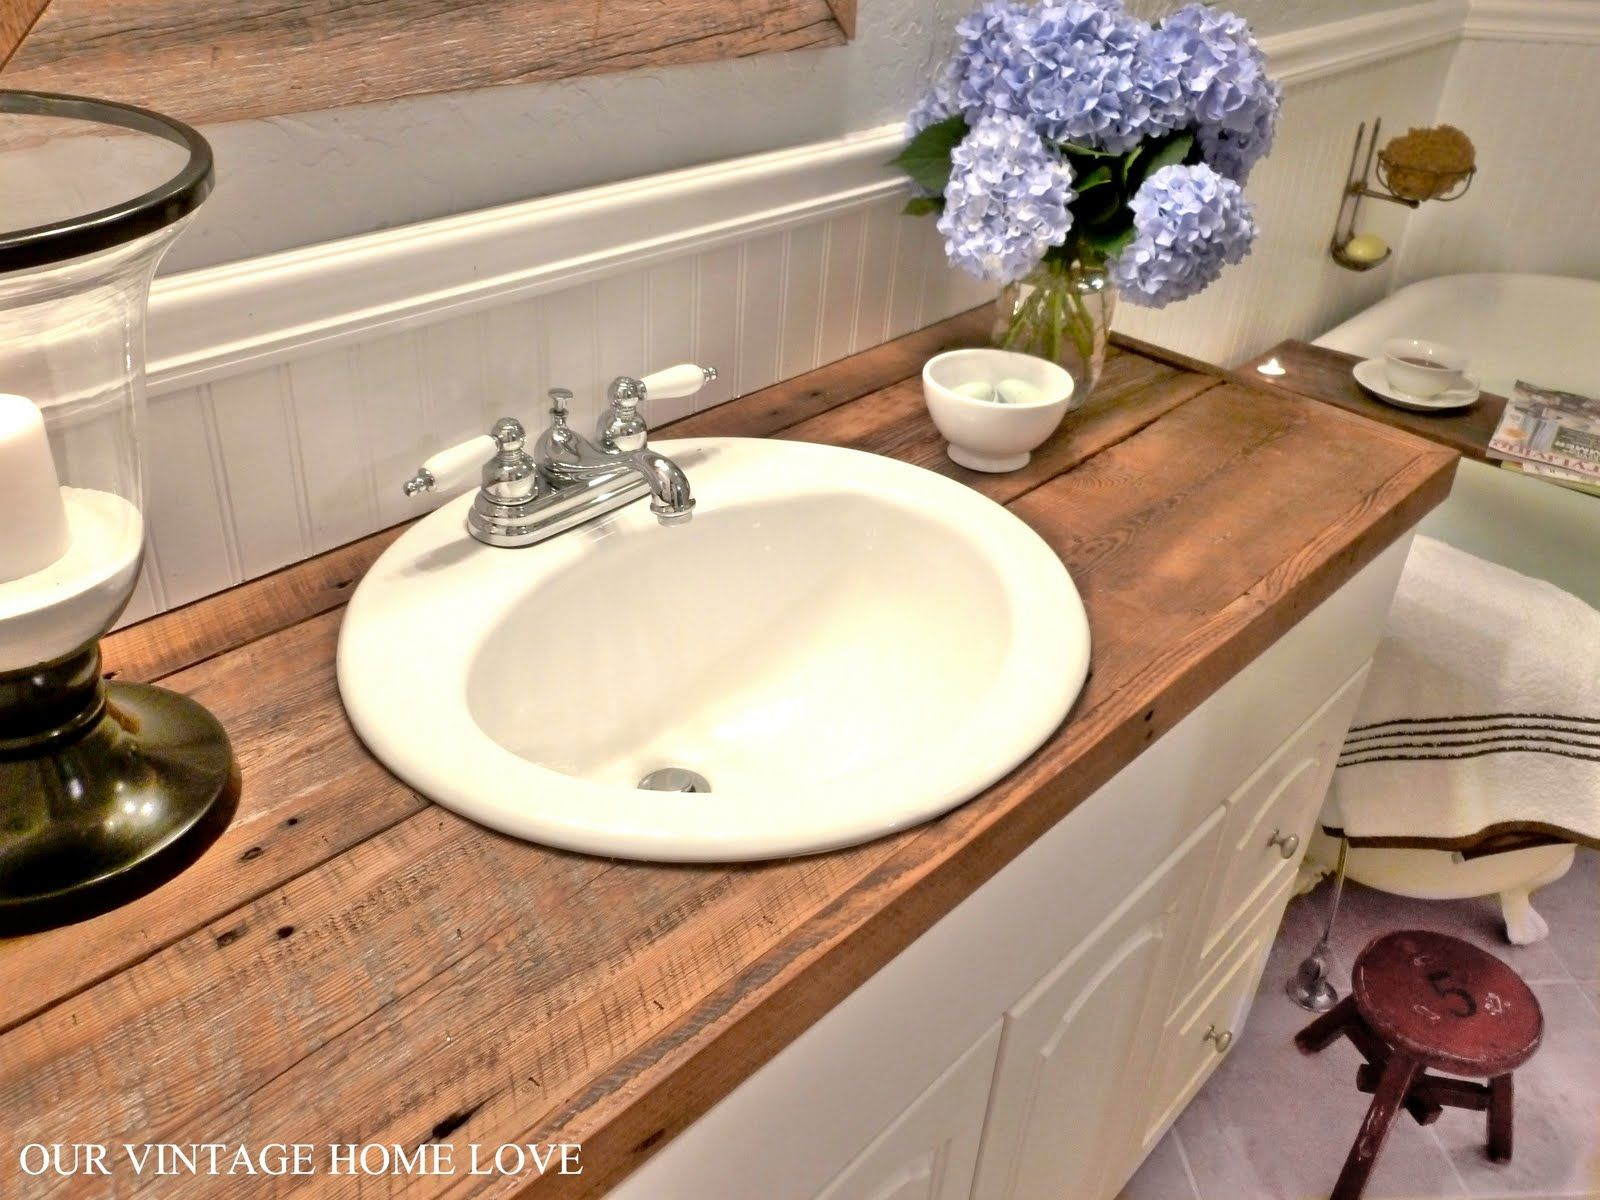 Merveilleux I Love This Reclaimed Wood Bathroom Counter Top. Where Could I Get My Hands  On Some Wood Like This And A Tutorial Of How To Get The Job Done?